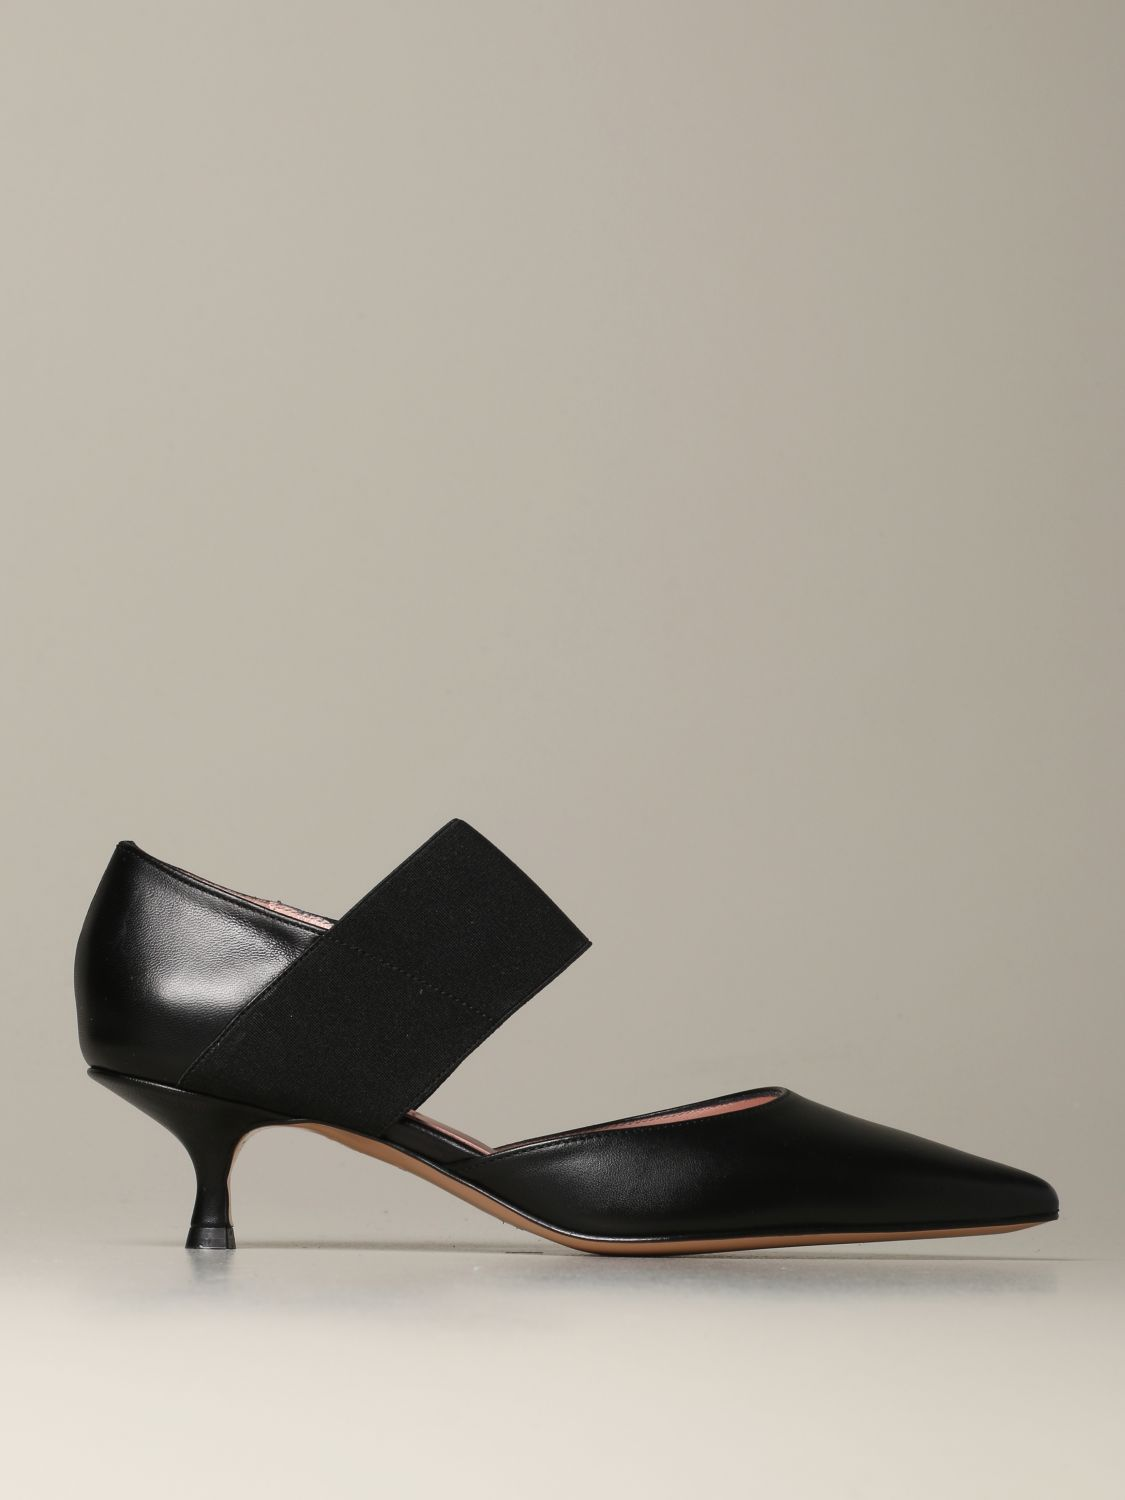 Court shoes Anna F.: Shoes women Anna F. black 1